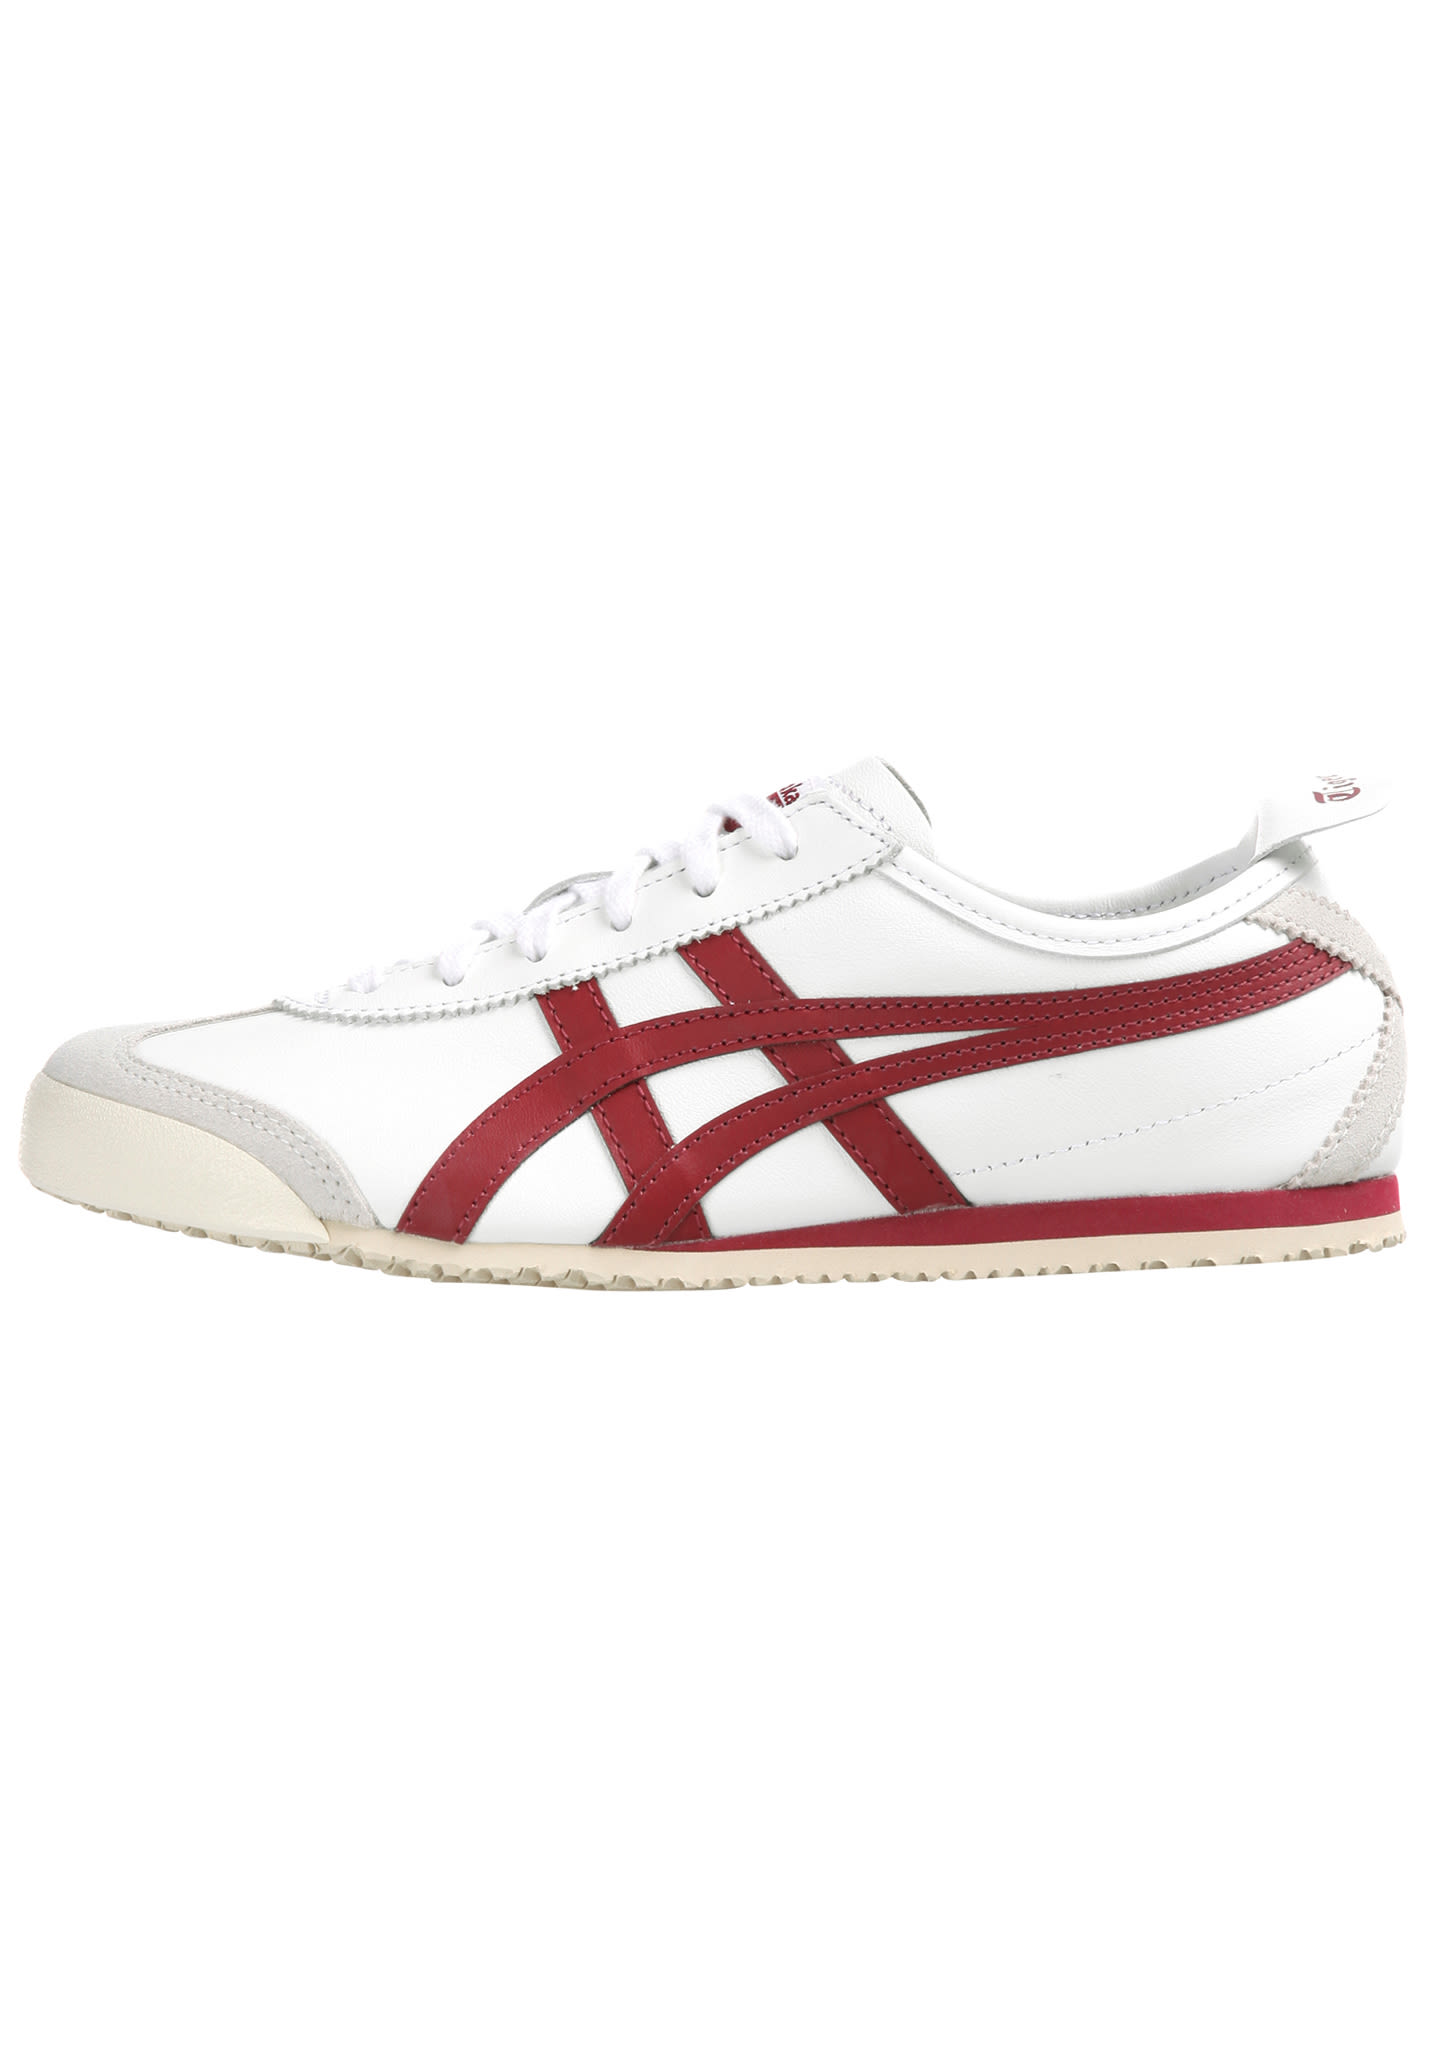 half off 15d78 913c0 Onitsuka Tiger Mexico 66 - Sneakers - White